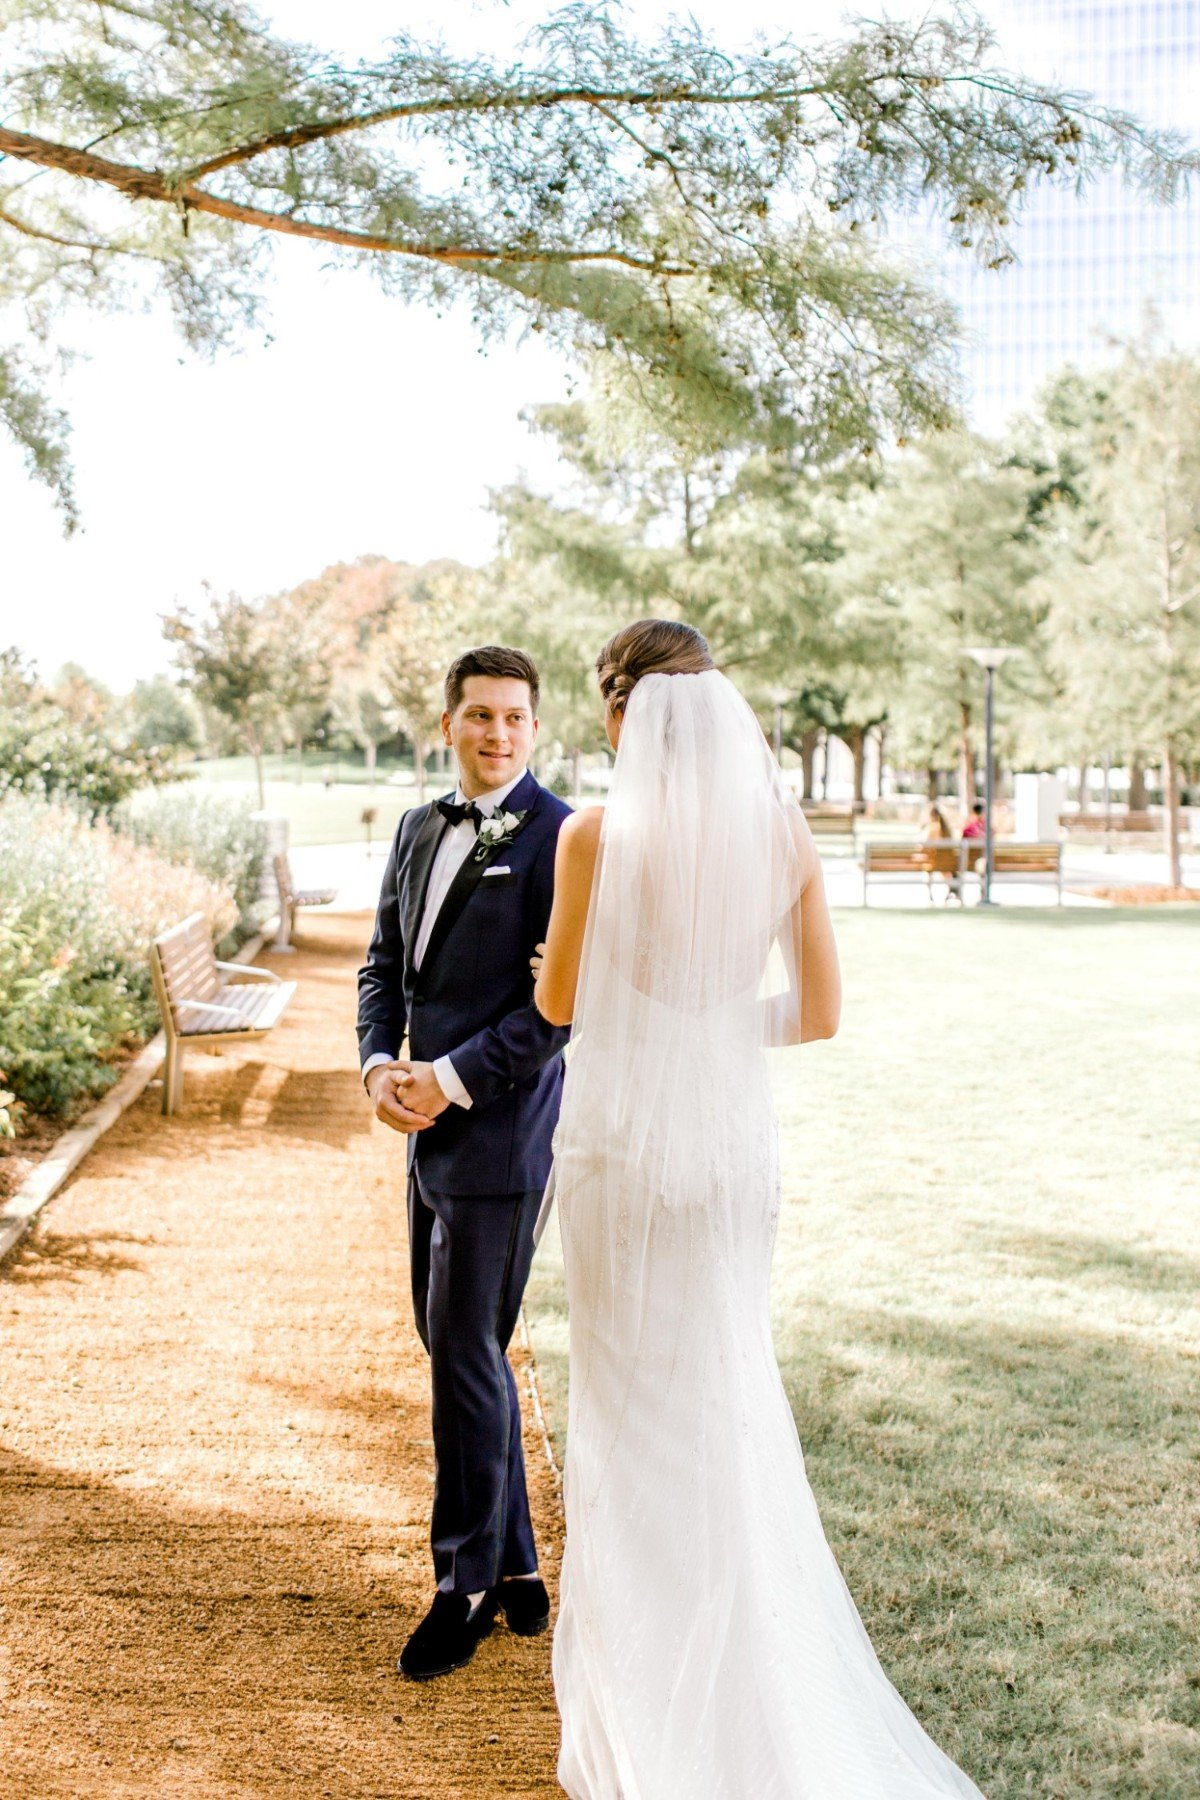 peppers-wedding-the-big-and-bright-10.20.18-26.jpg